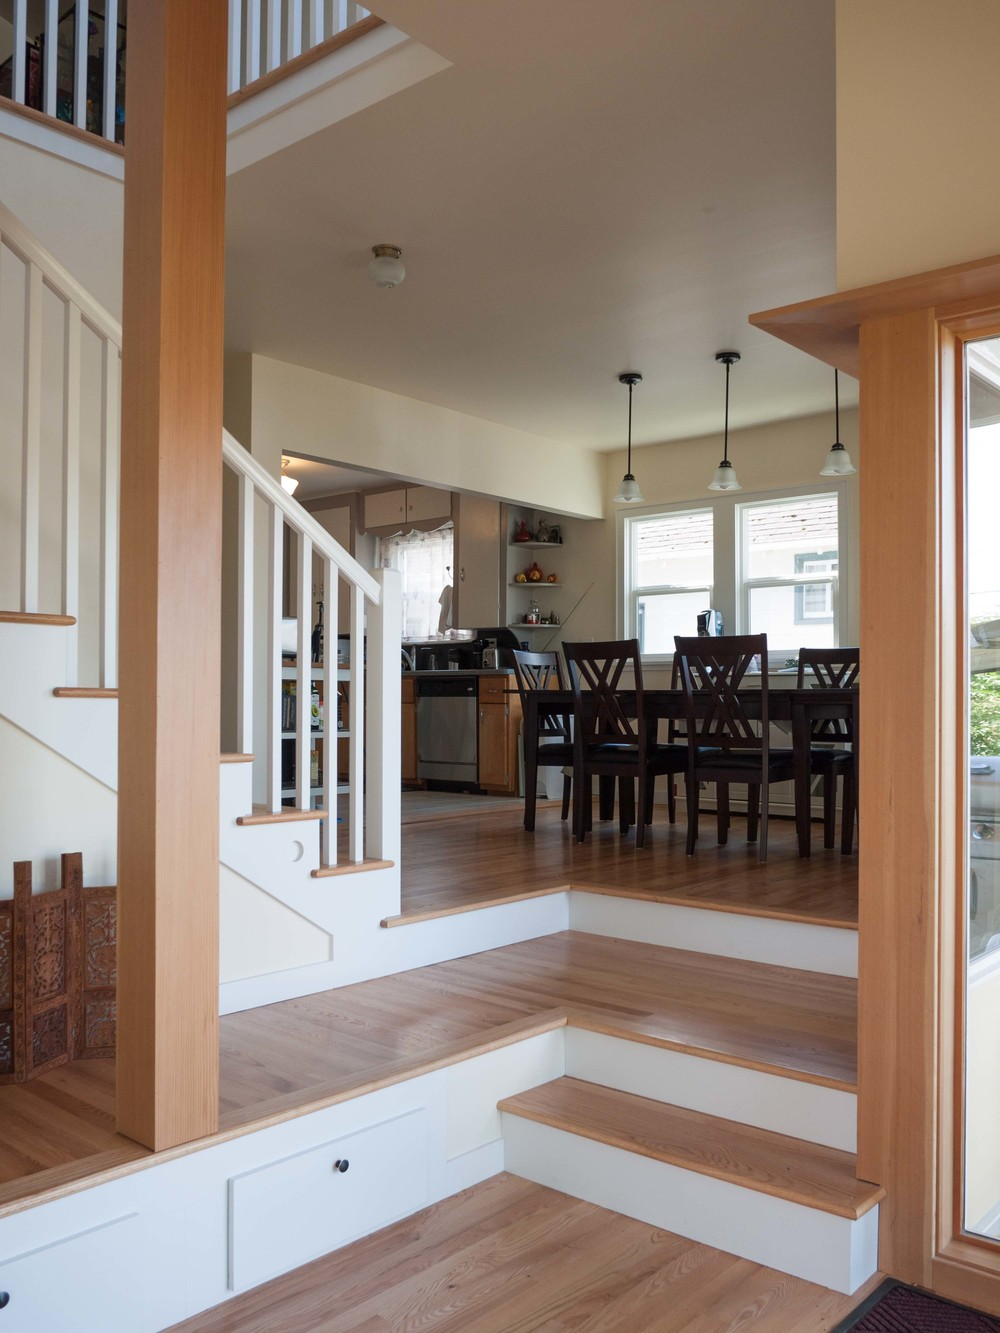 Beyond the mudroom is the dining room and existing kitchen.